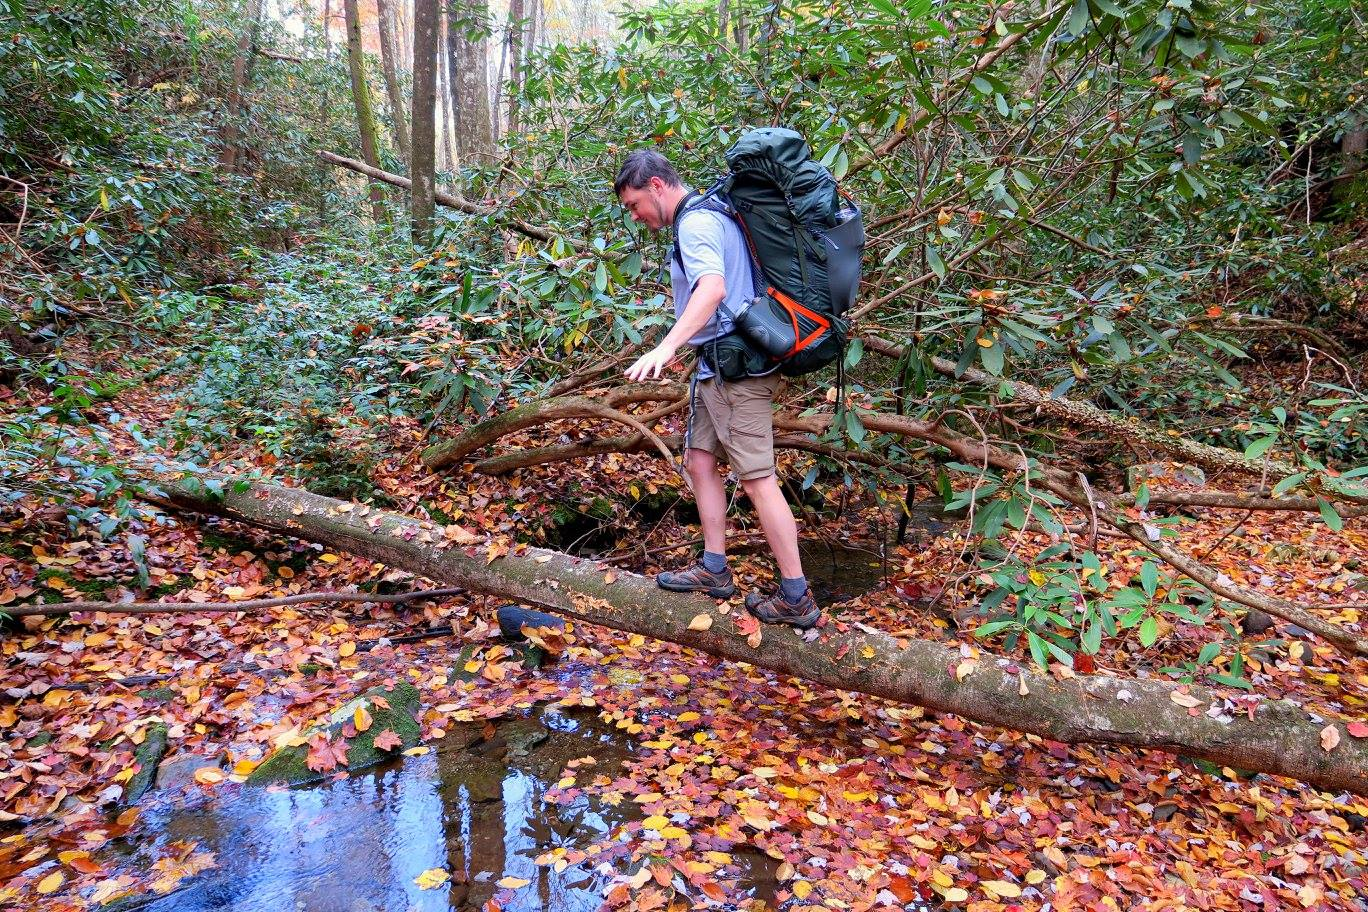 FALL CLINIC SERIES - BACKPACKING 101